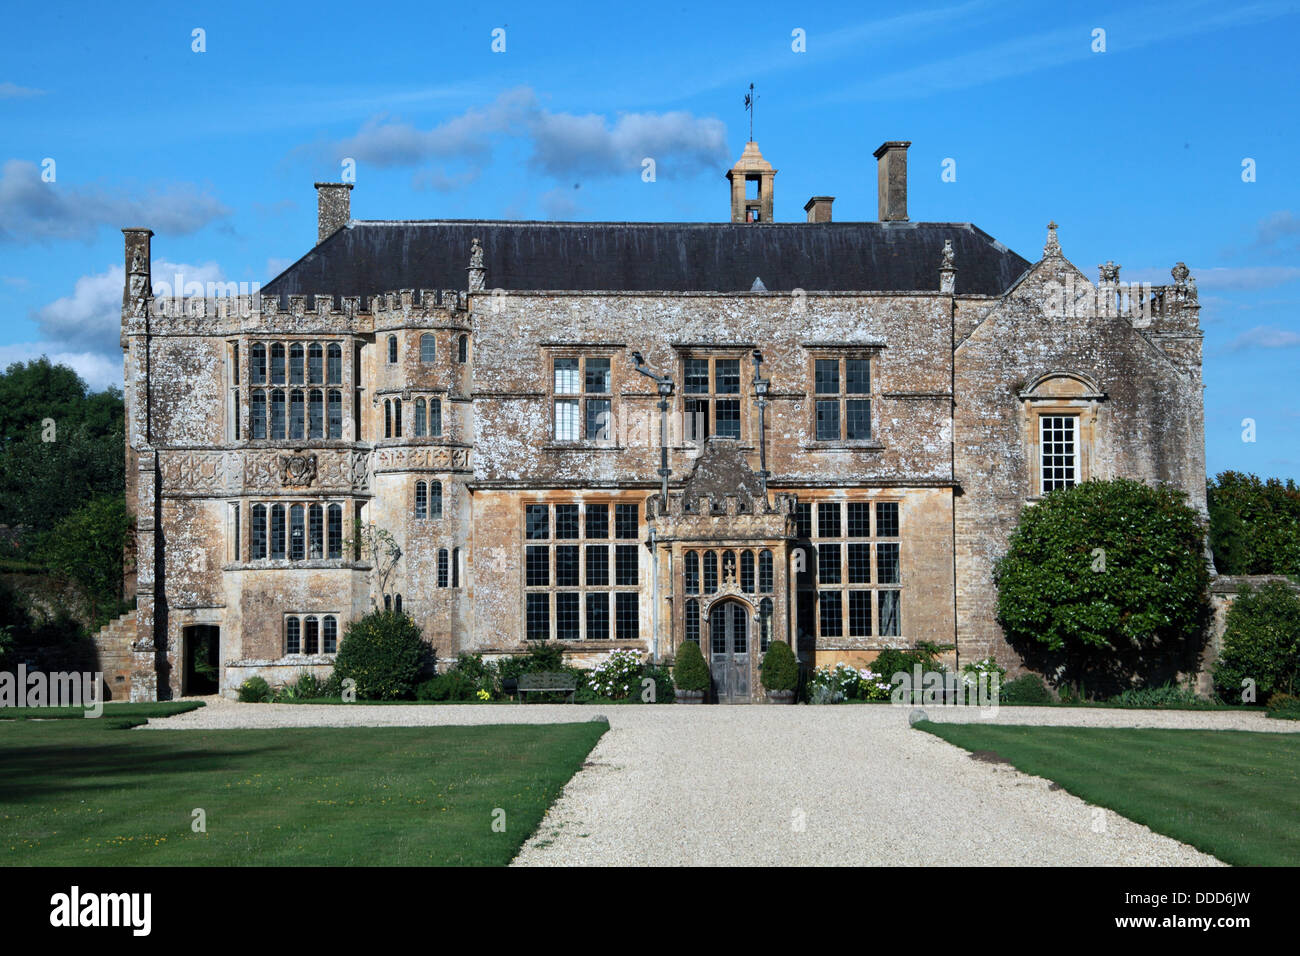 Brympton d'Evercy manor house, including St Andrews Church, near Yeovil, Somerset, South West England, UK - Stock Image